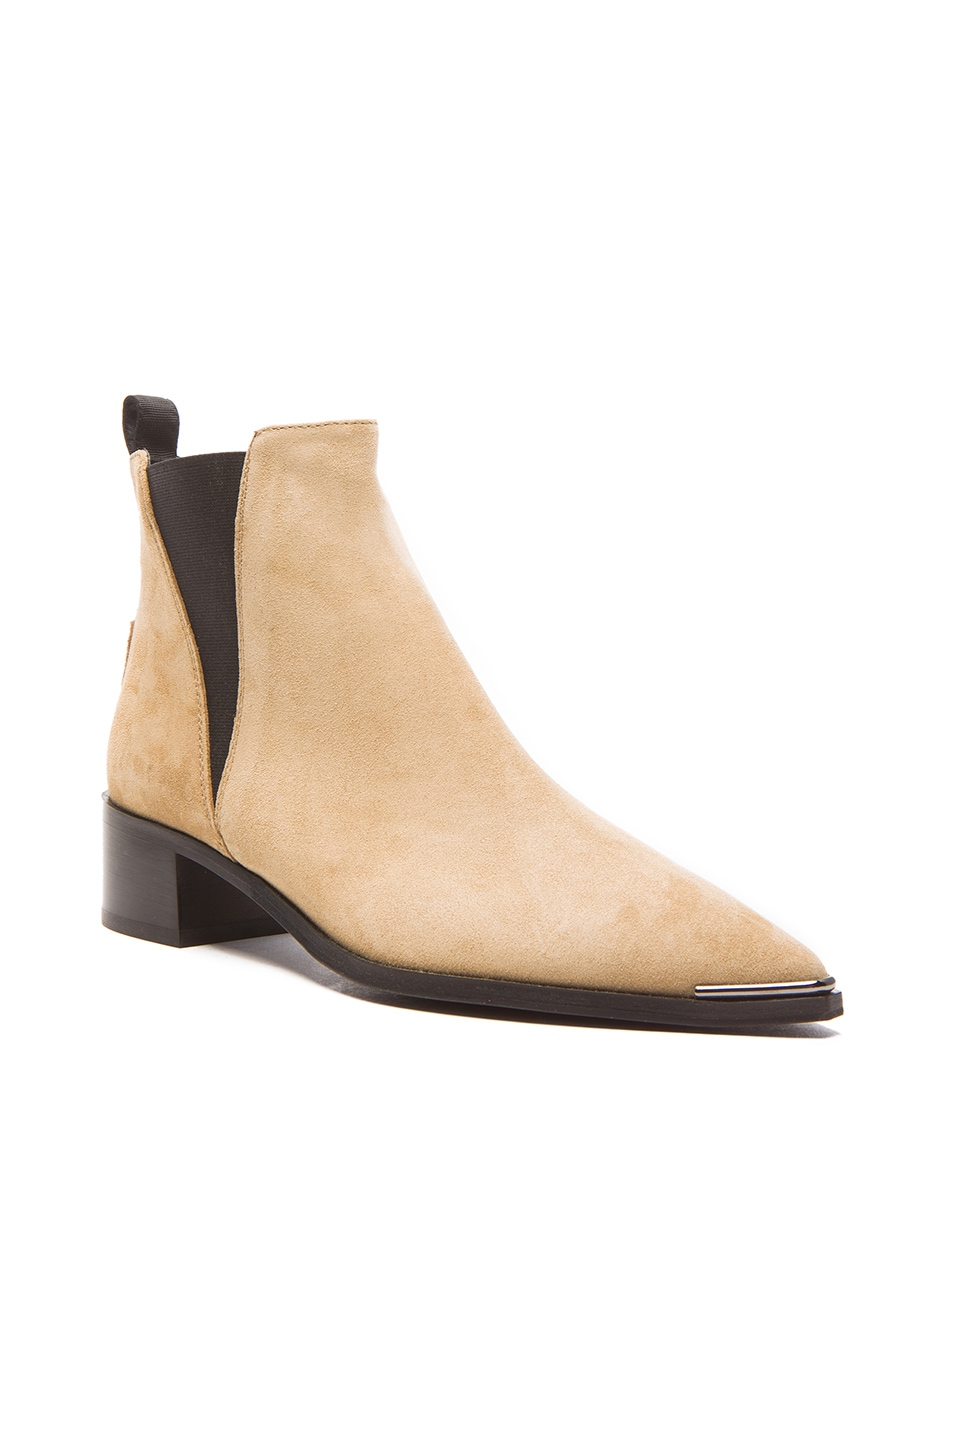 Image 2 of Acne Studios Jensen Suede Booties in Beige